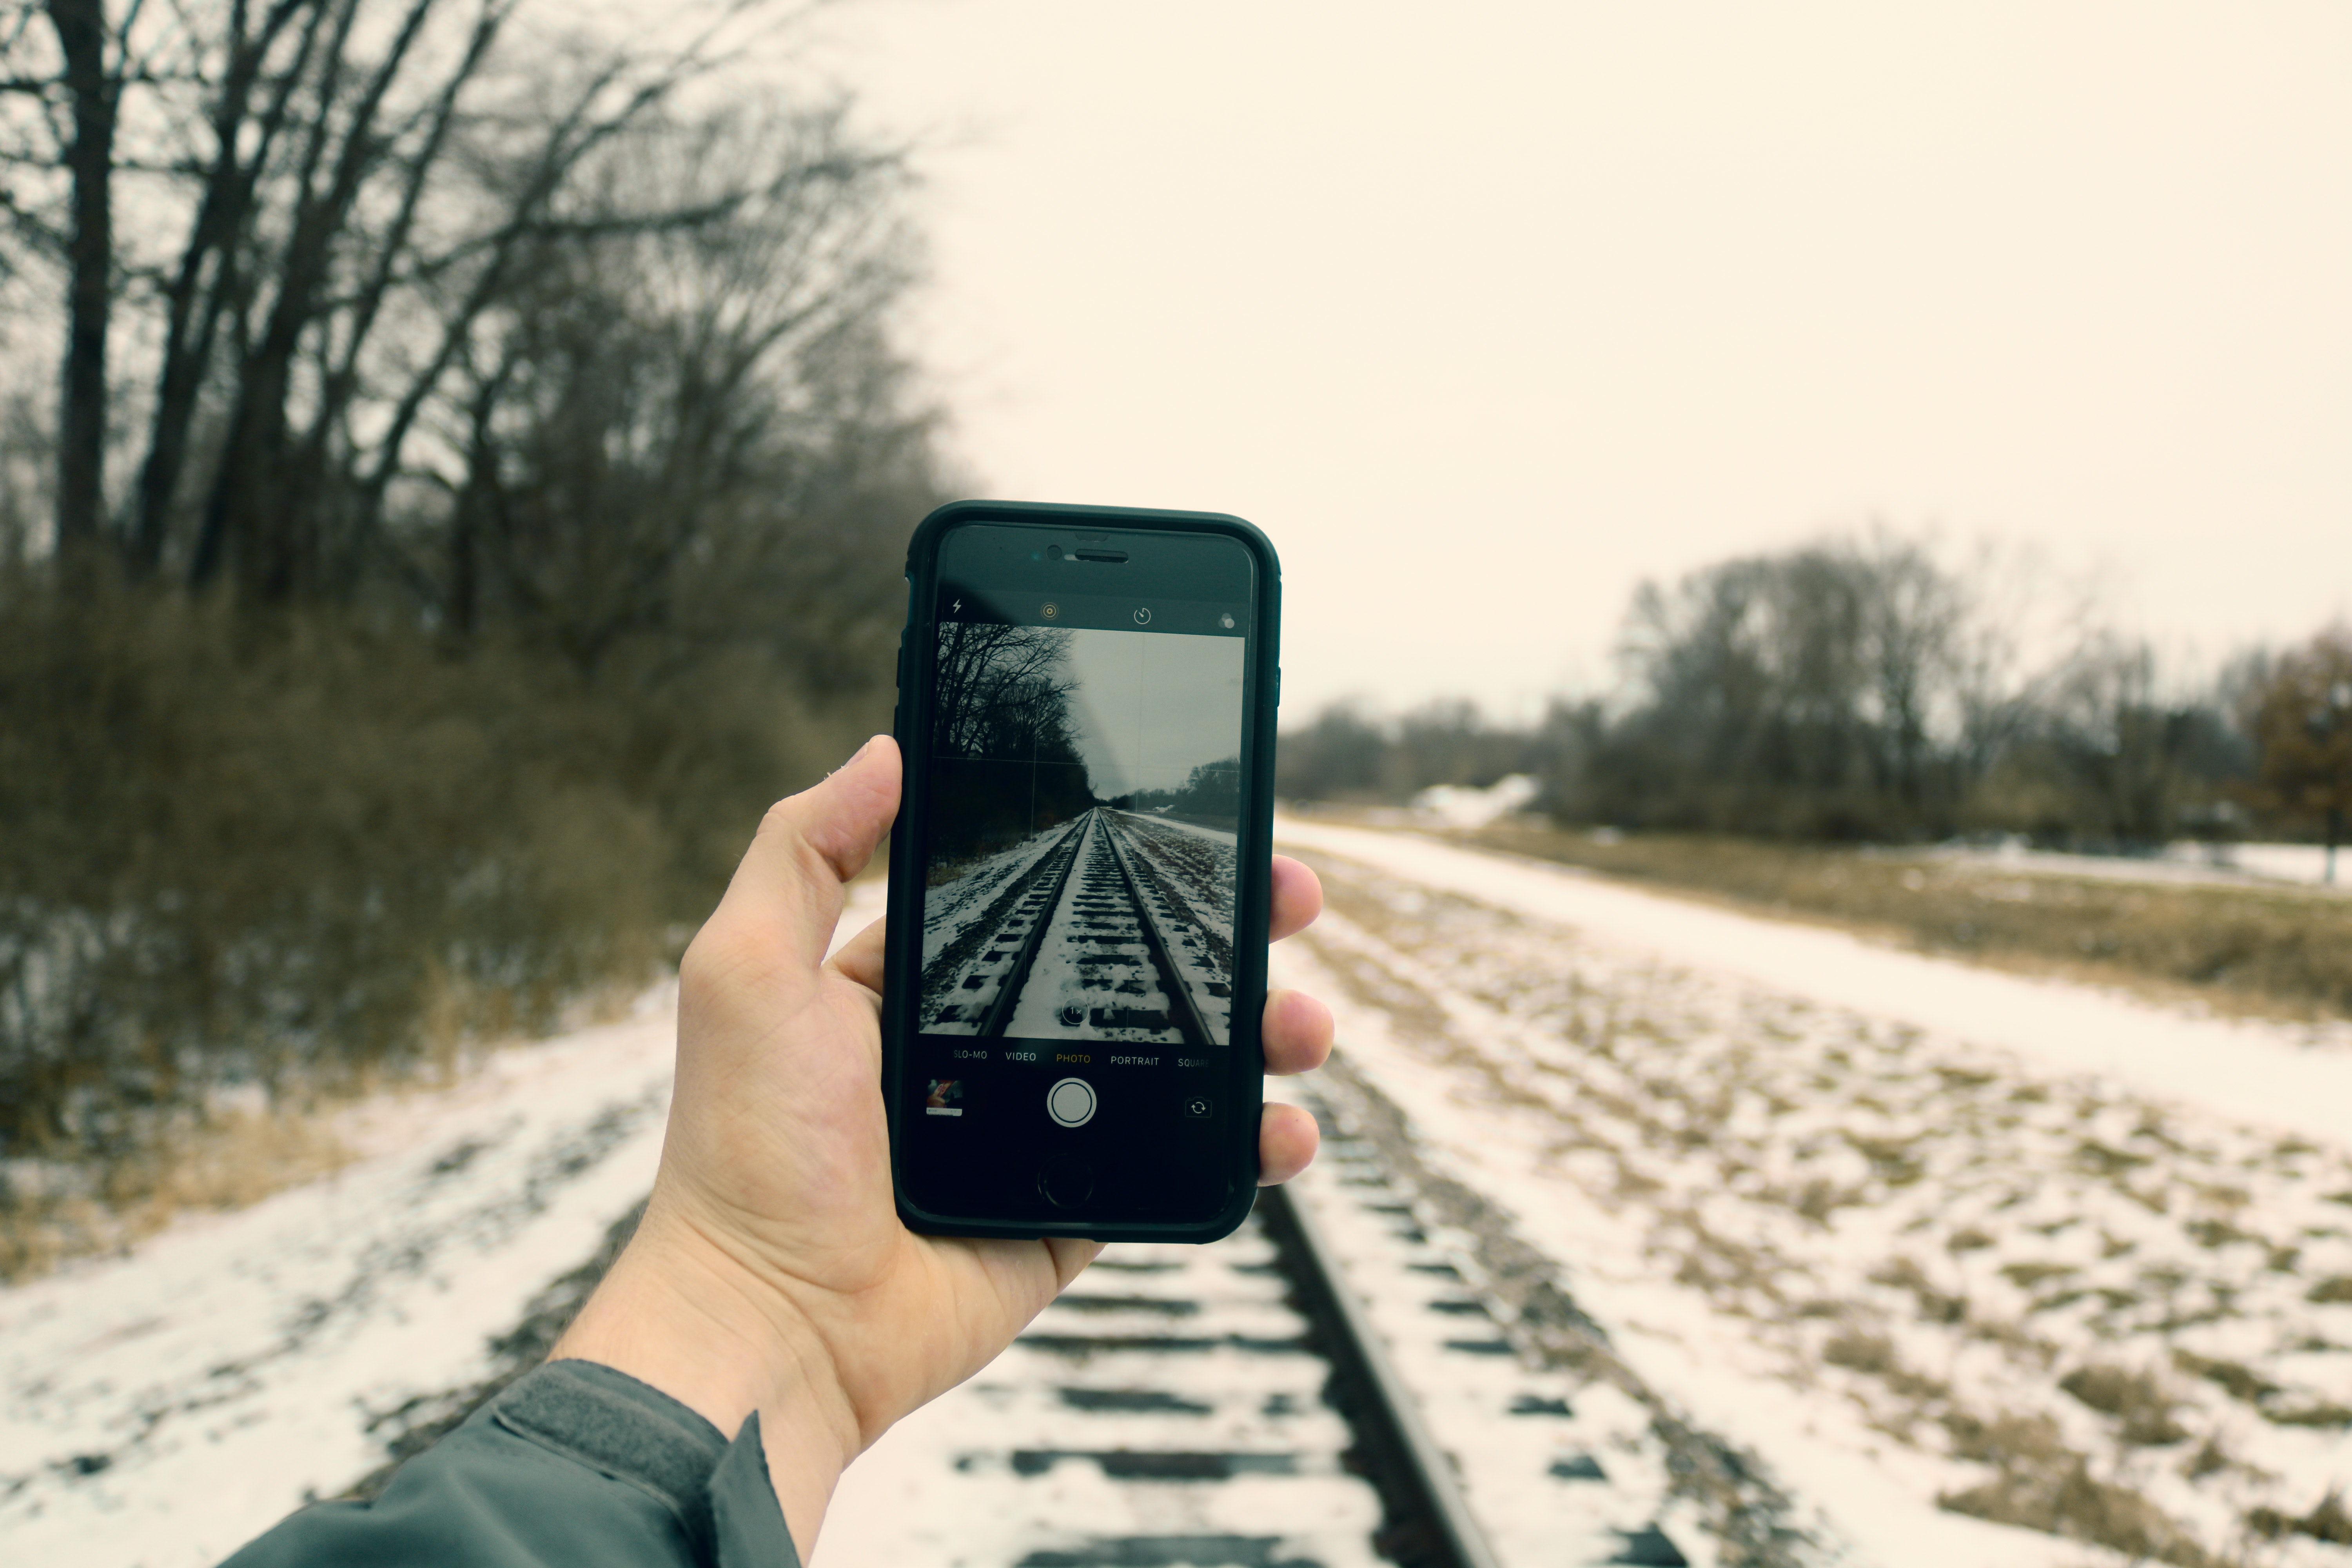 Person holding iphone taking photo of train rails